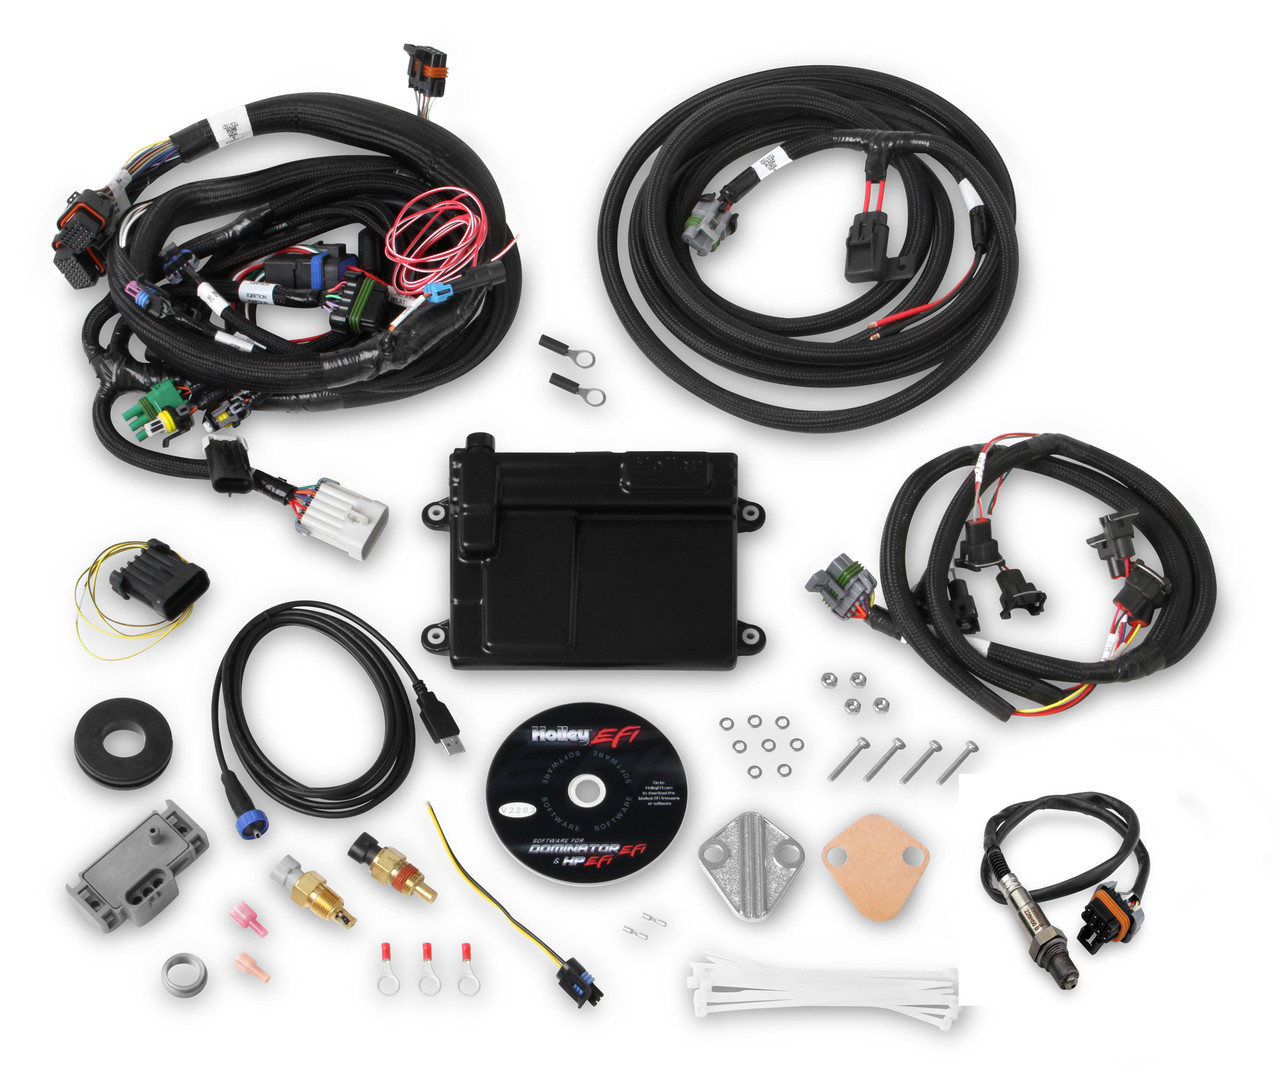 hight resolution of holley hp efi engine management kit fits 86 93 302 351w anderson for a ford 302 wiring harness kits